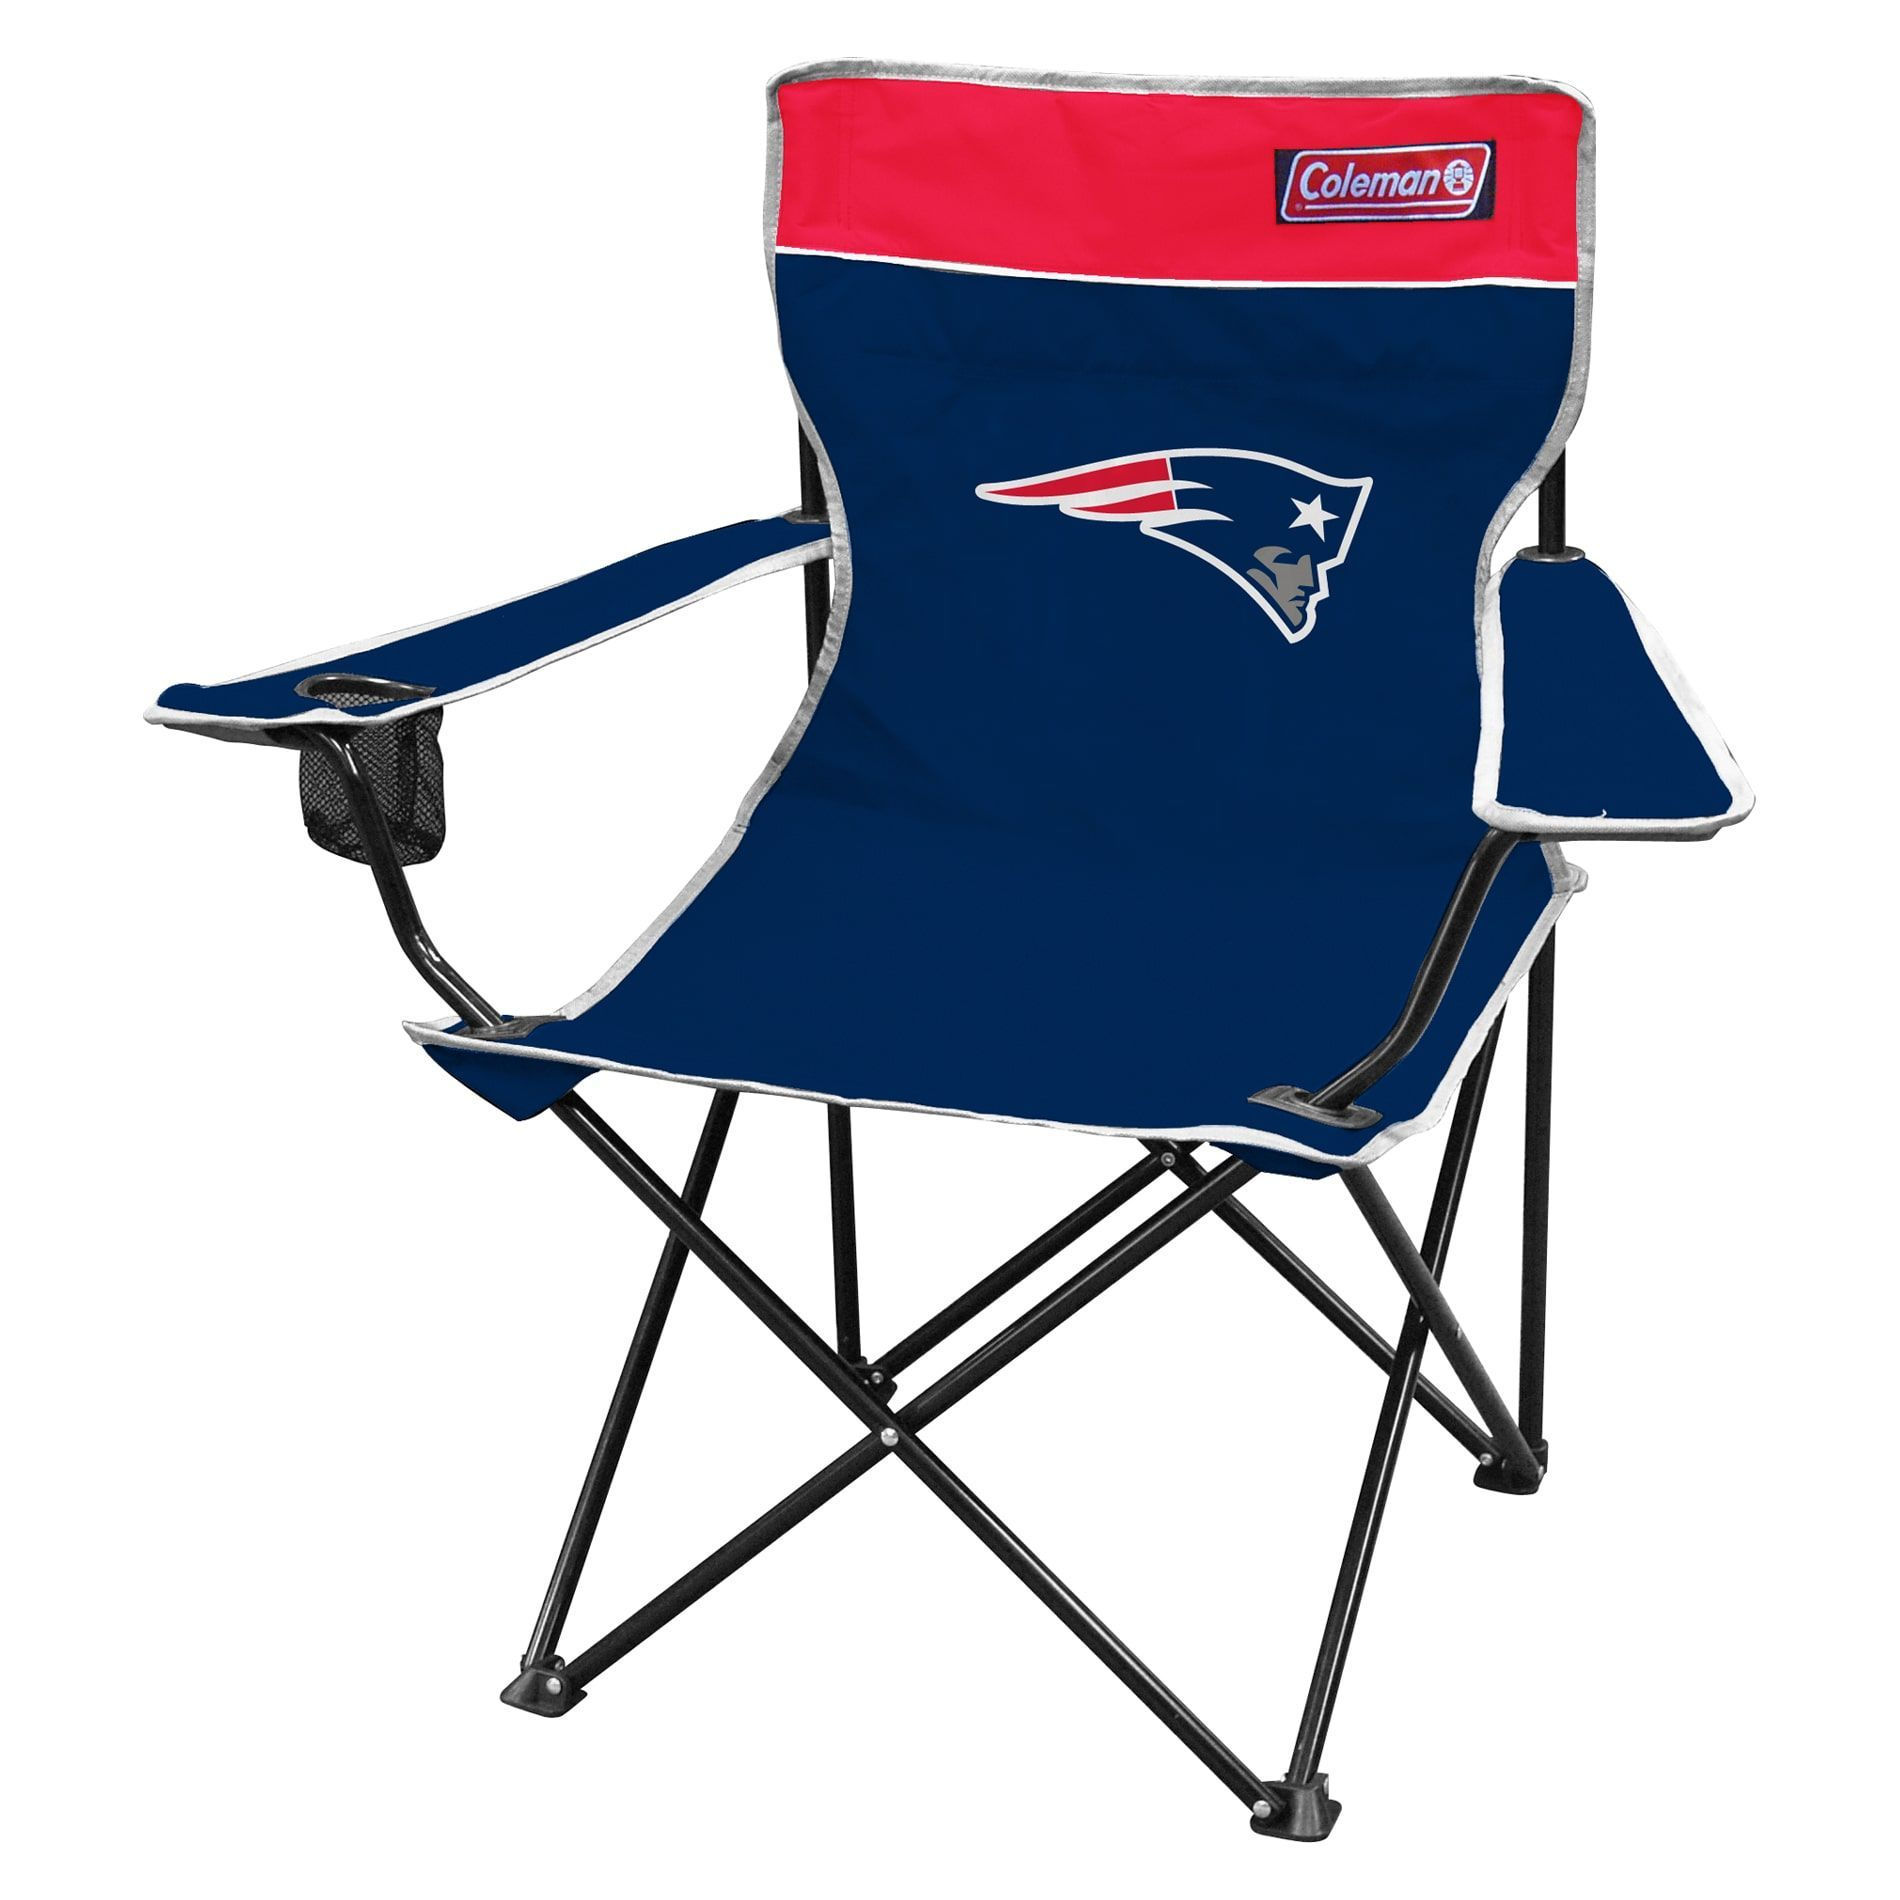 Coleman NFL New England Patriots Quad Tailgate Chair